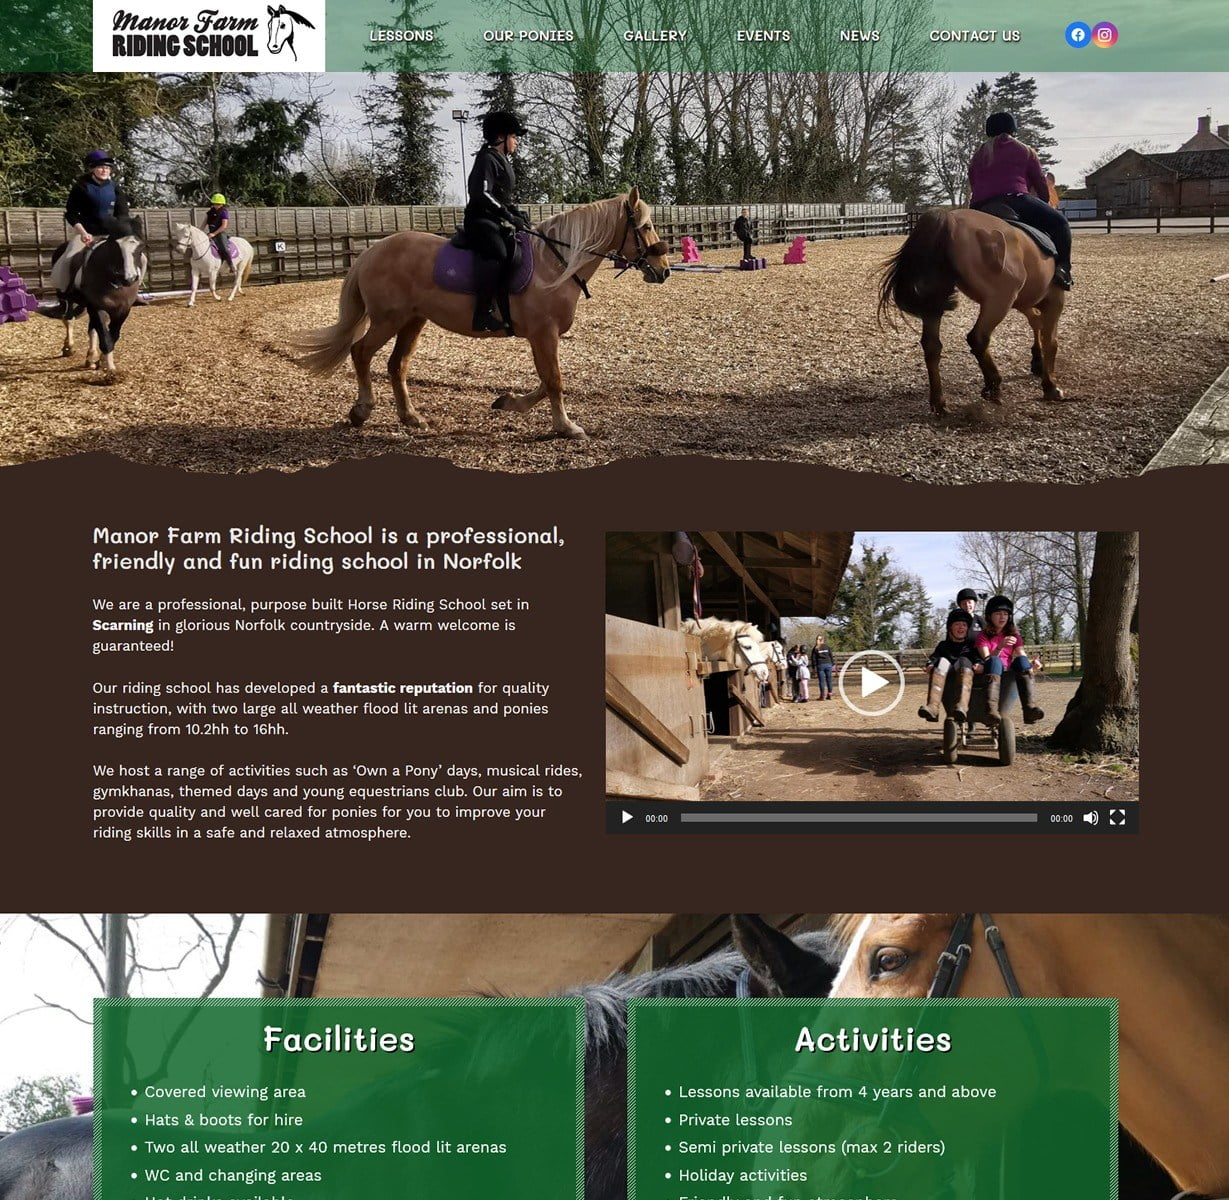 Manor Farm Riding School website design